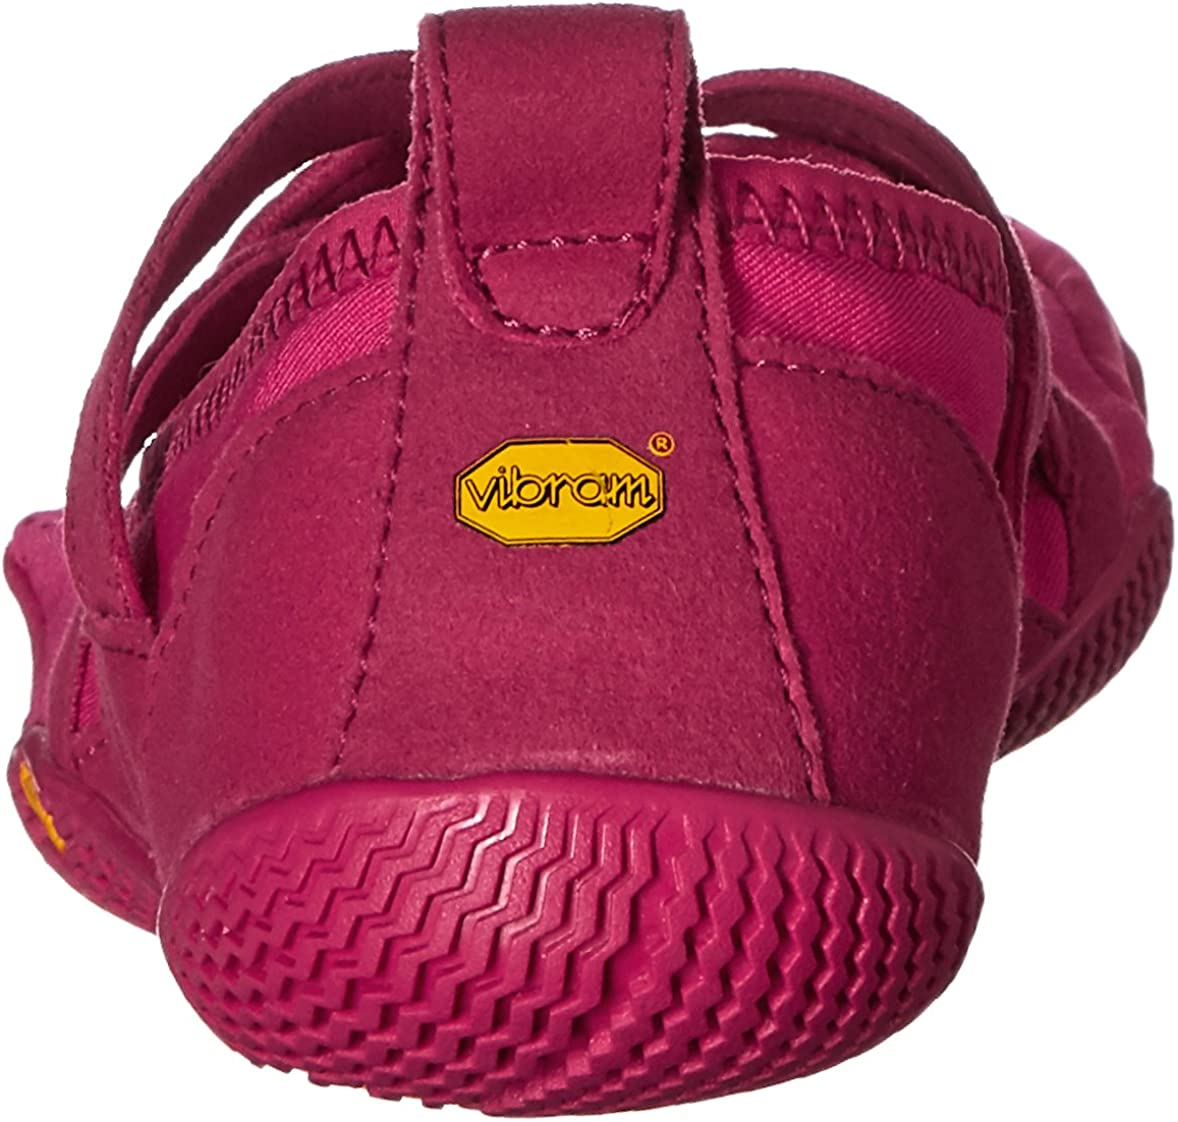 Vibram FiveFingers Alitza Loop, Chaussures Multisport Outdoor Femme Rose Dark Pink